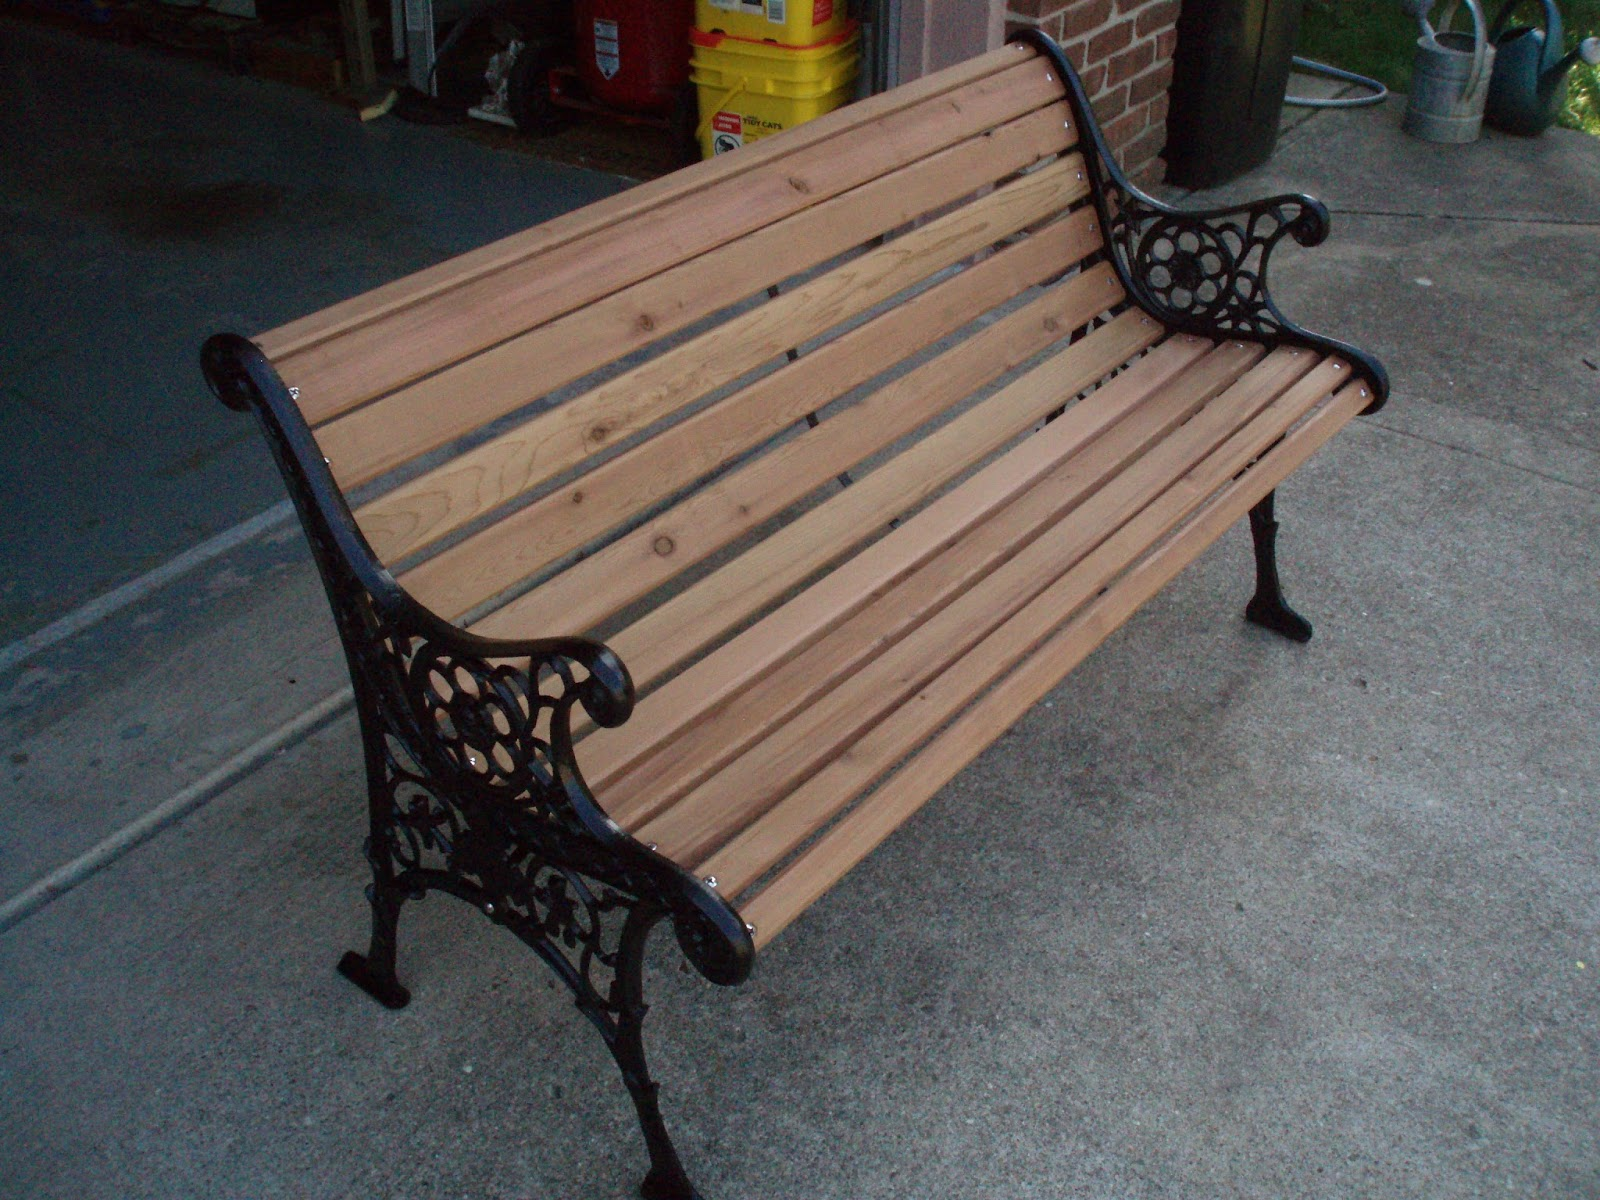 Here Is The Finished Park Bench With Red Cedar Wood And Freshly Painted Wrought Iron